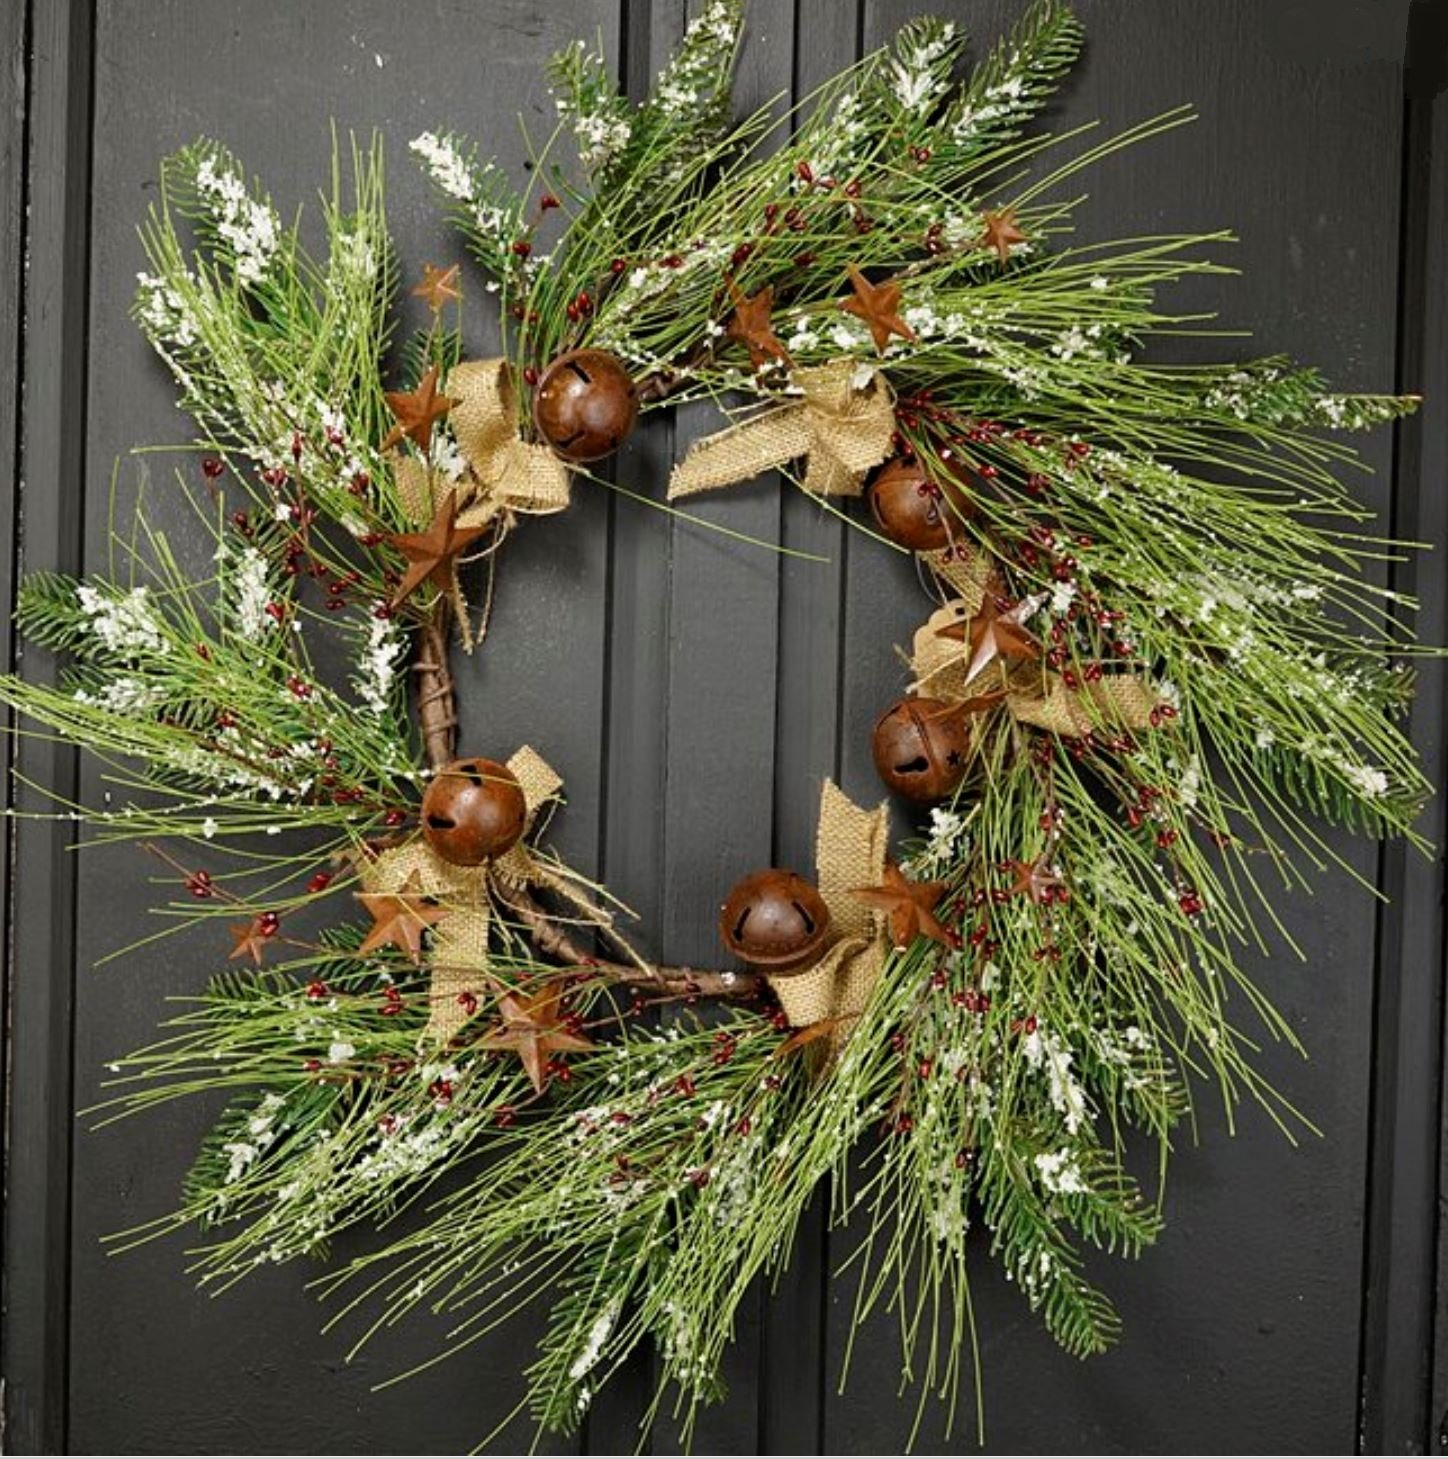 Christmas Long and Short Needle Pine Snow Tipped Wreath with Red Rice Berries, Burlap Ribbon, Rusty Stars and Large Jingle BellsRed Berry, and Burlap